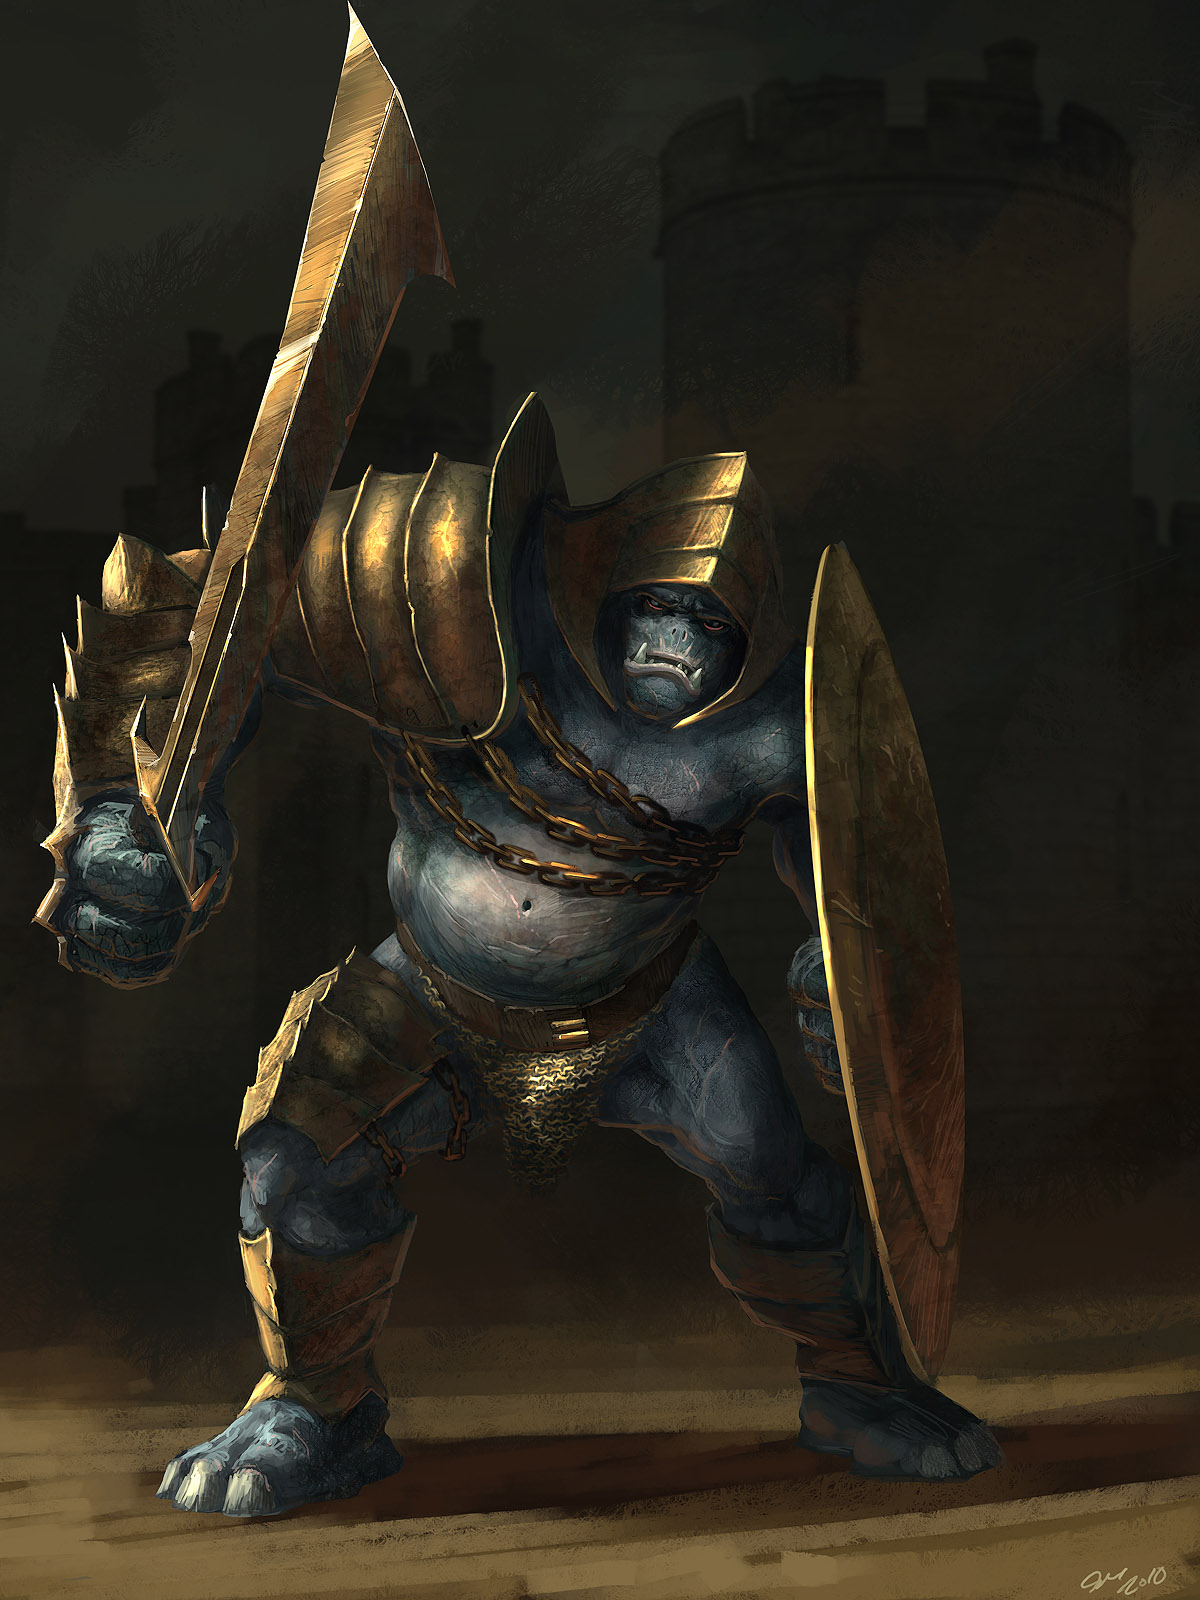 Dungeon_Troll_Kings_Guard_by_Gaius31duke.jpg